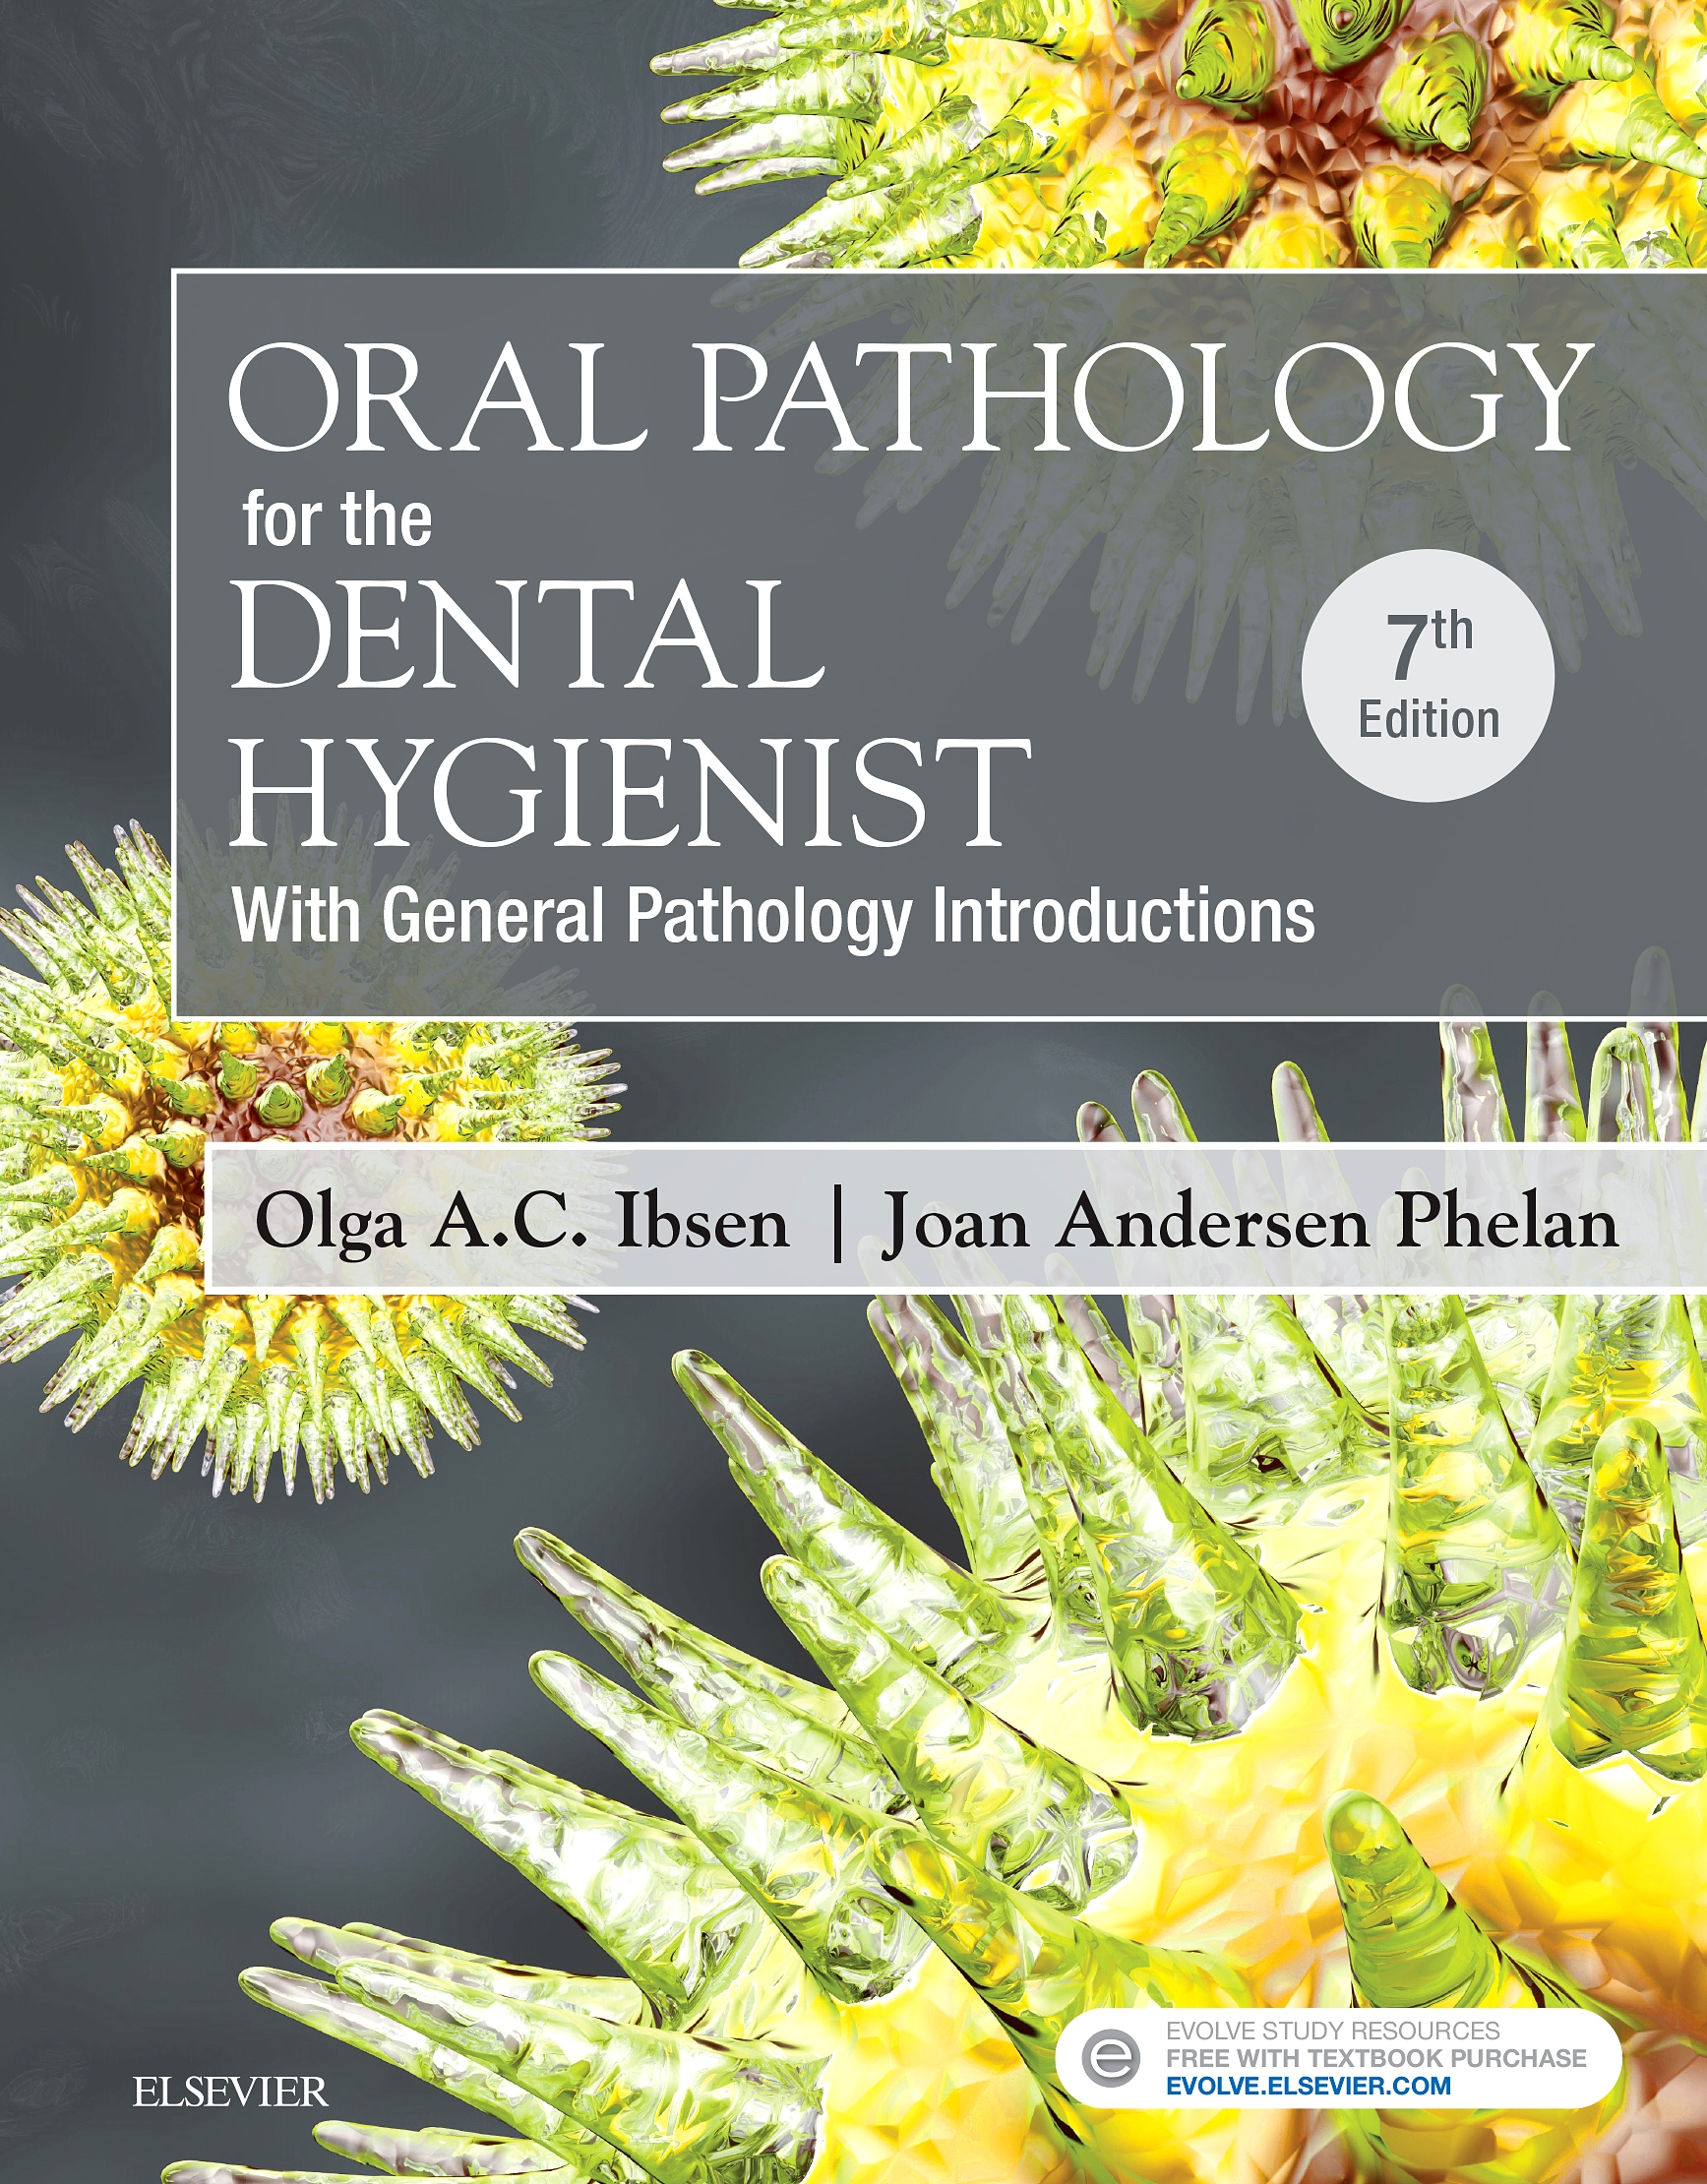 Evolve Resources for Oral Pathology for the Dental Hygienist, 7th Edition